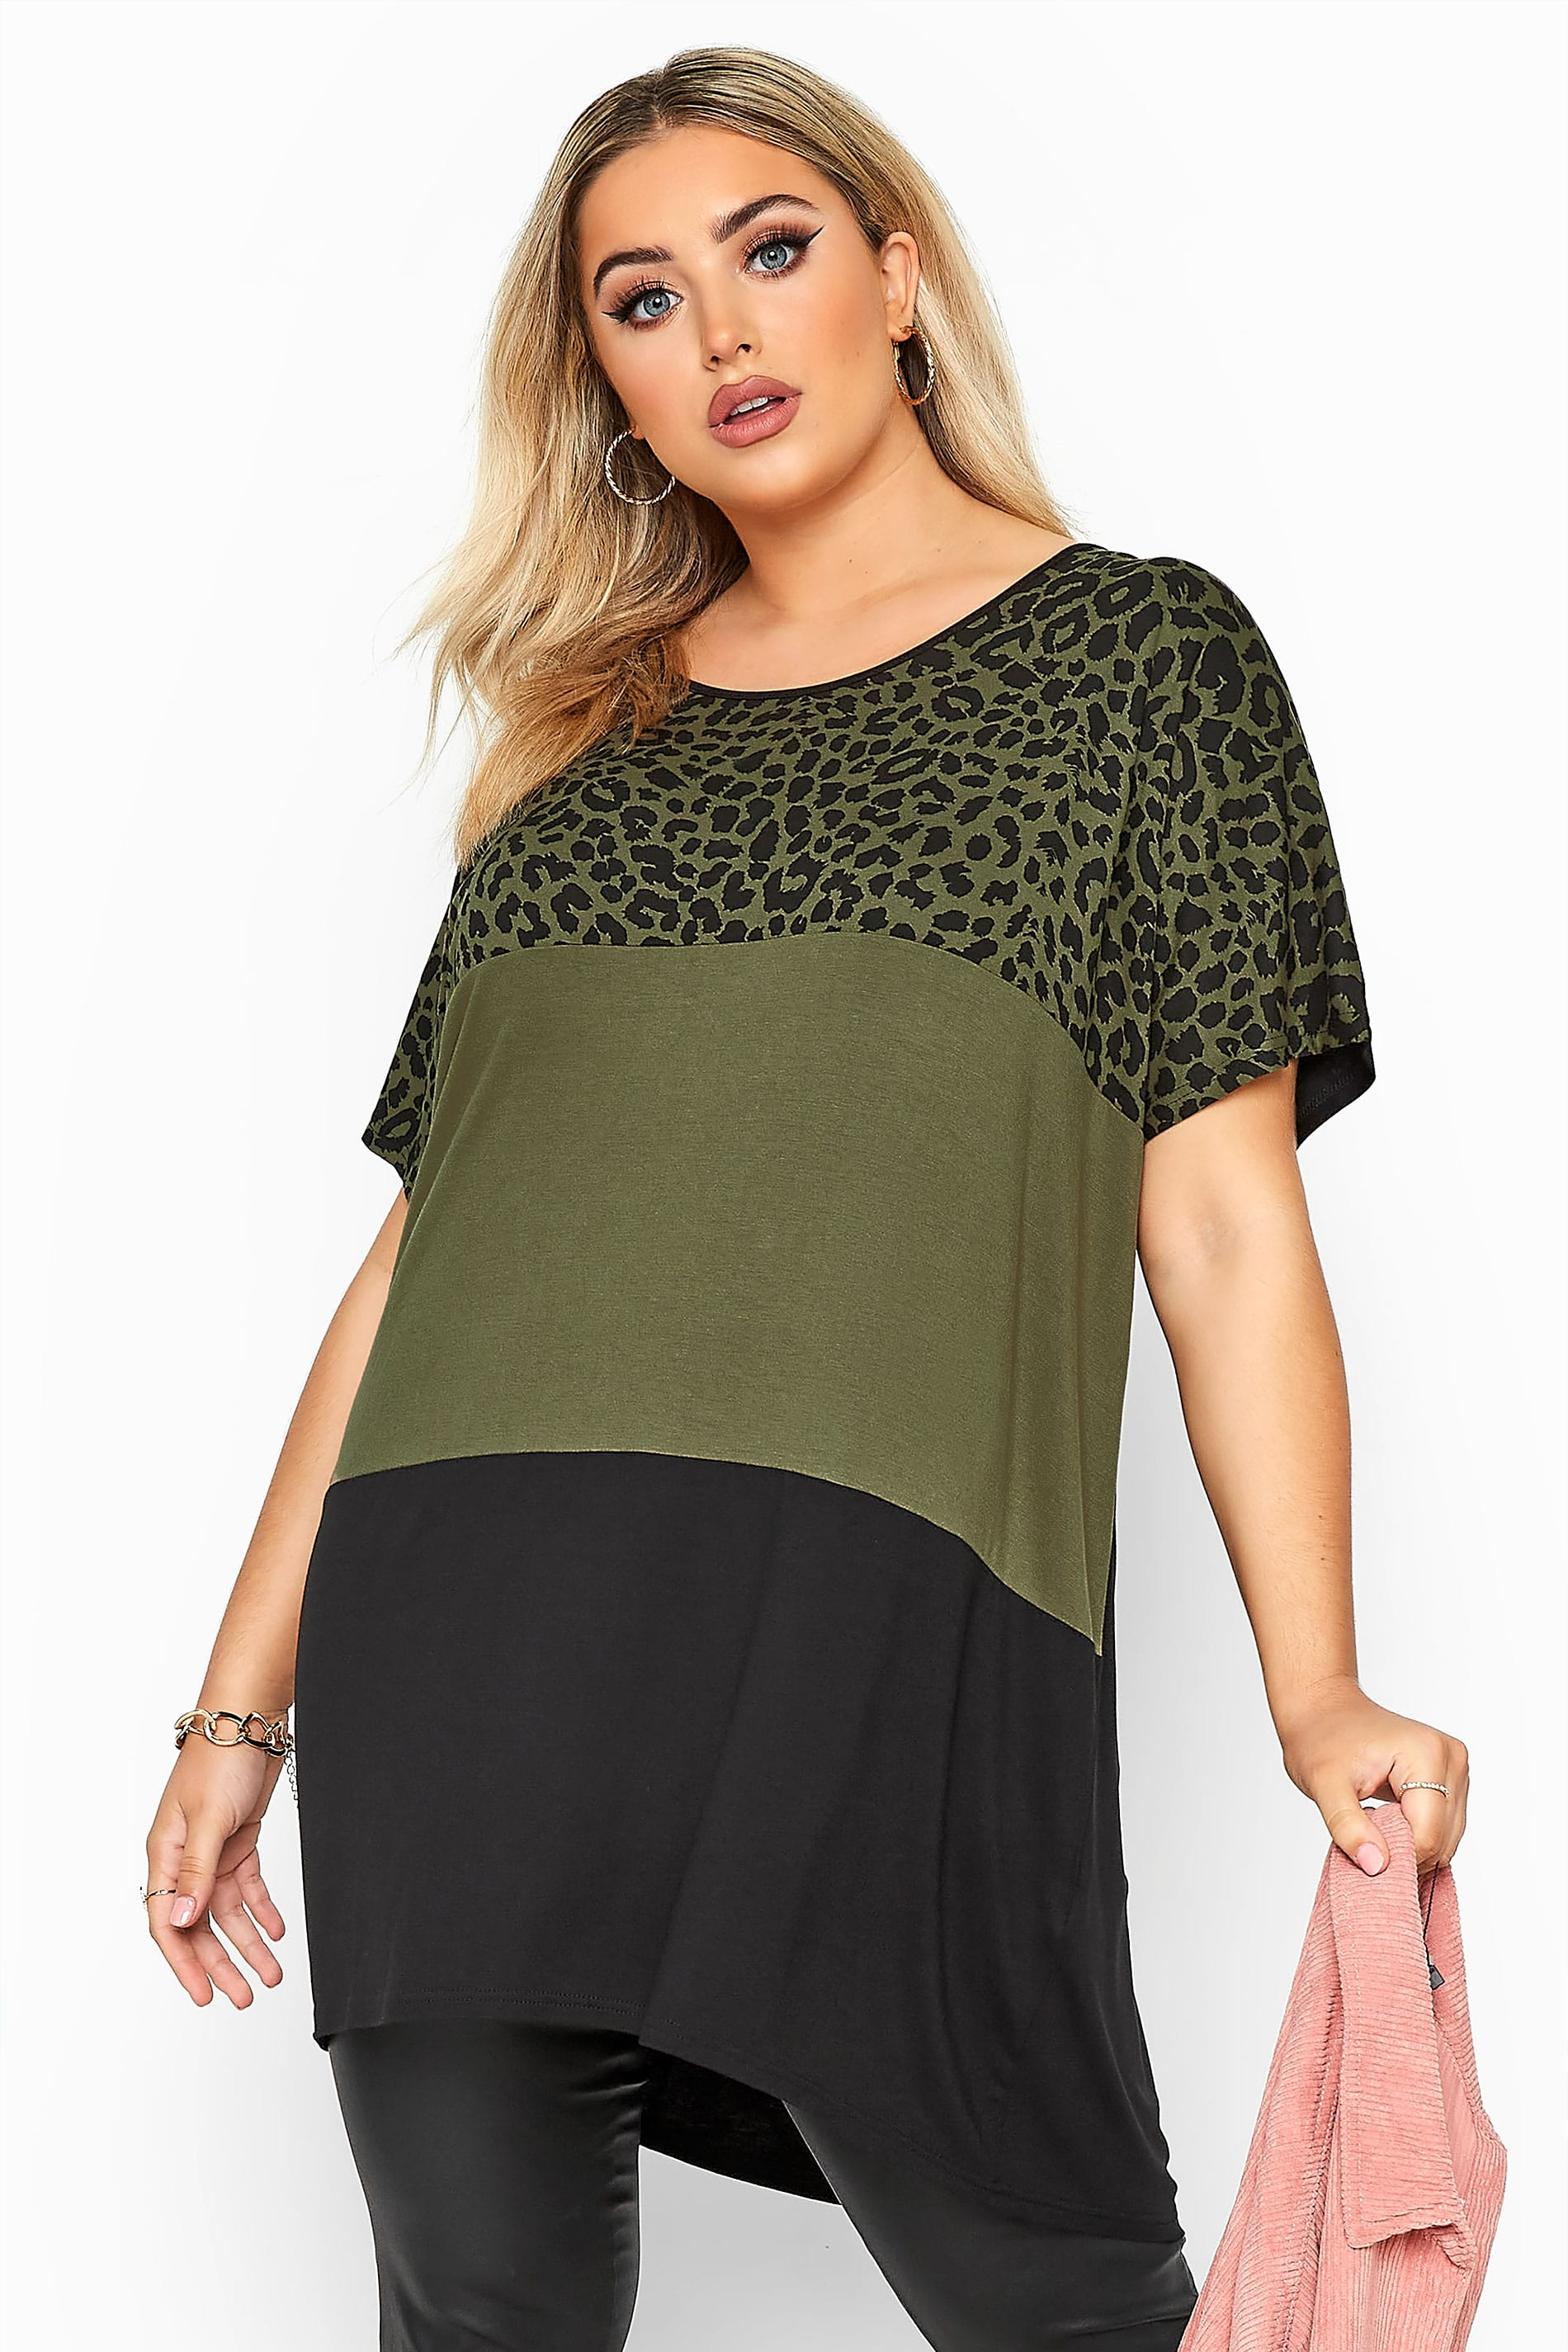 Khaki Animal Print Colour Block Top